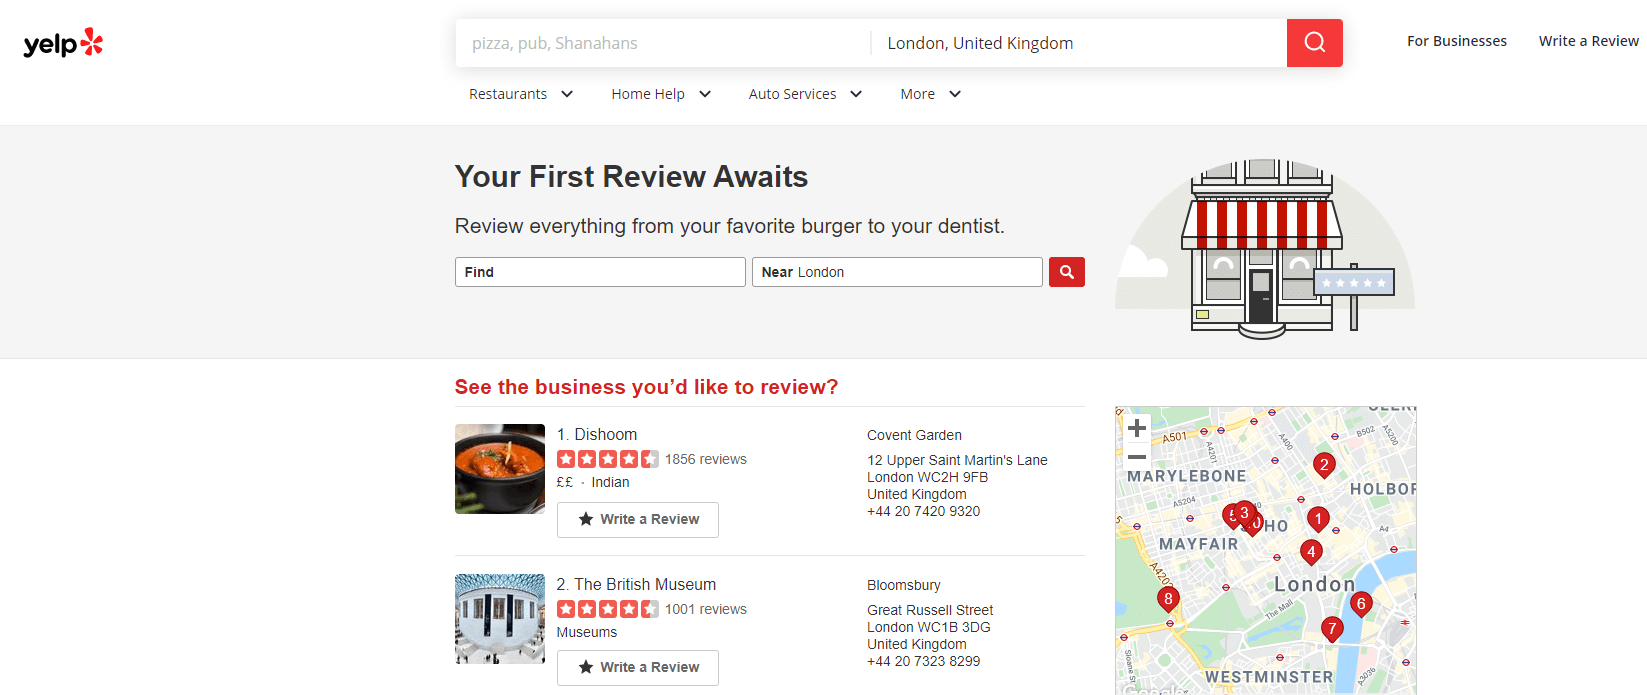 One of the most popular review sites is Yelp, which publishes crowd-sourced reviews about business.